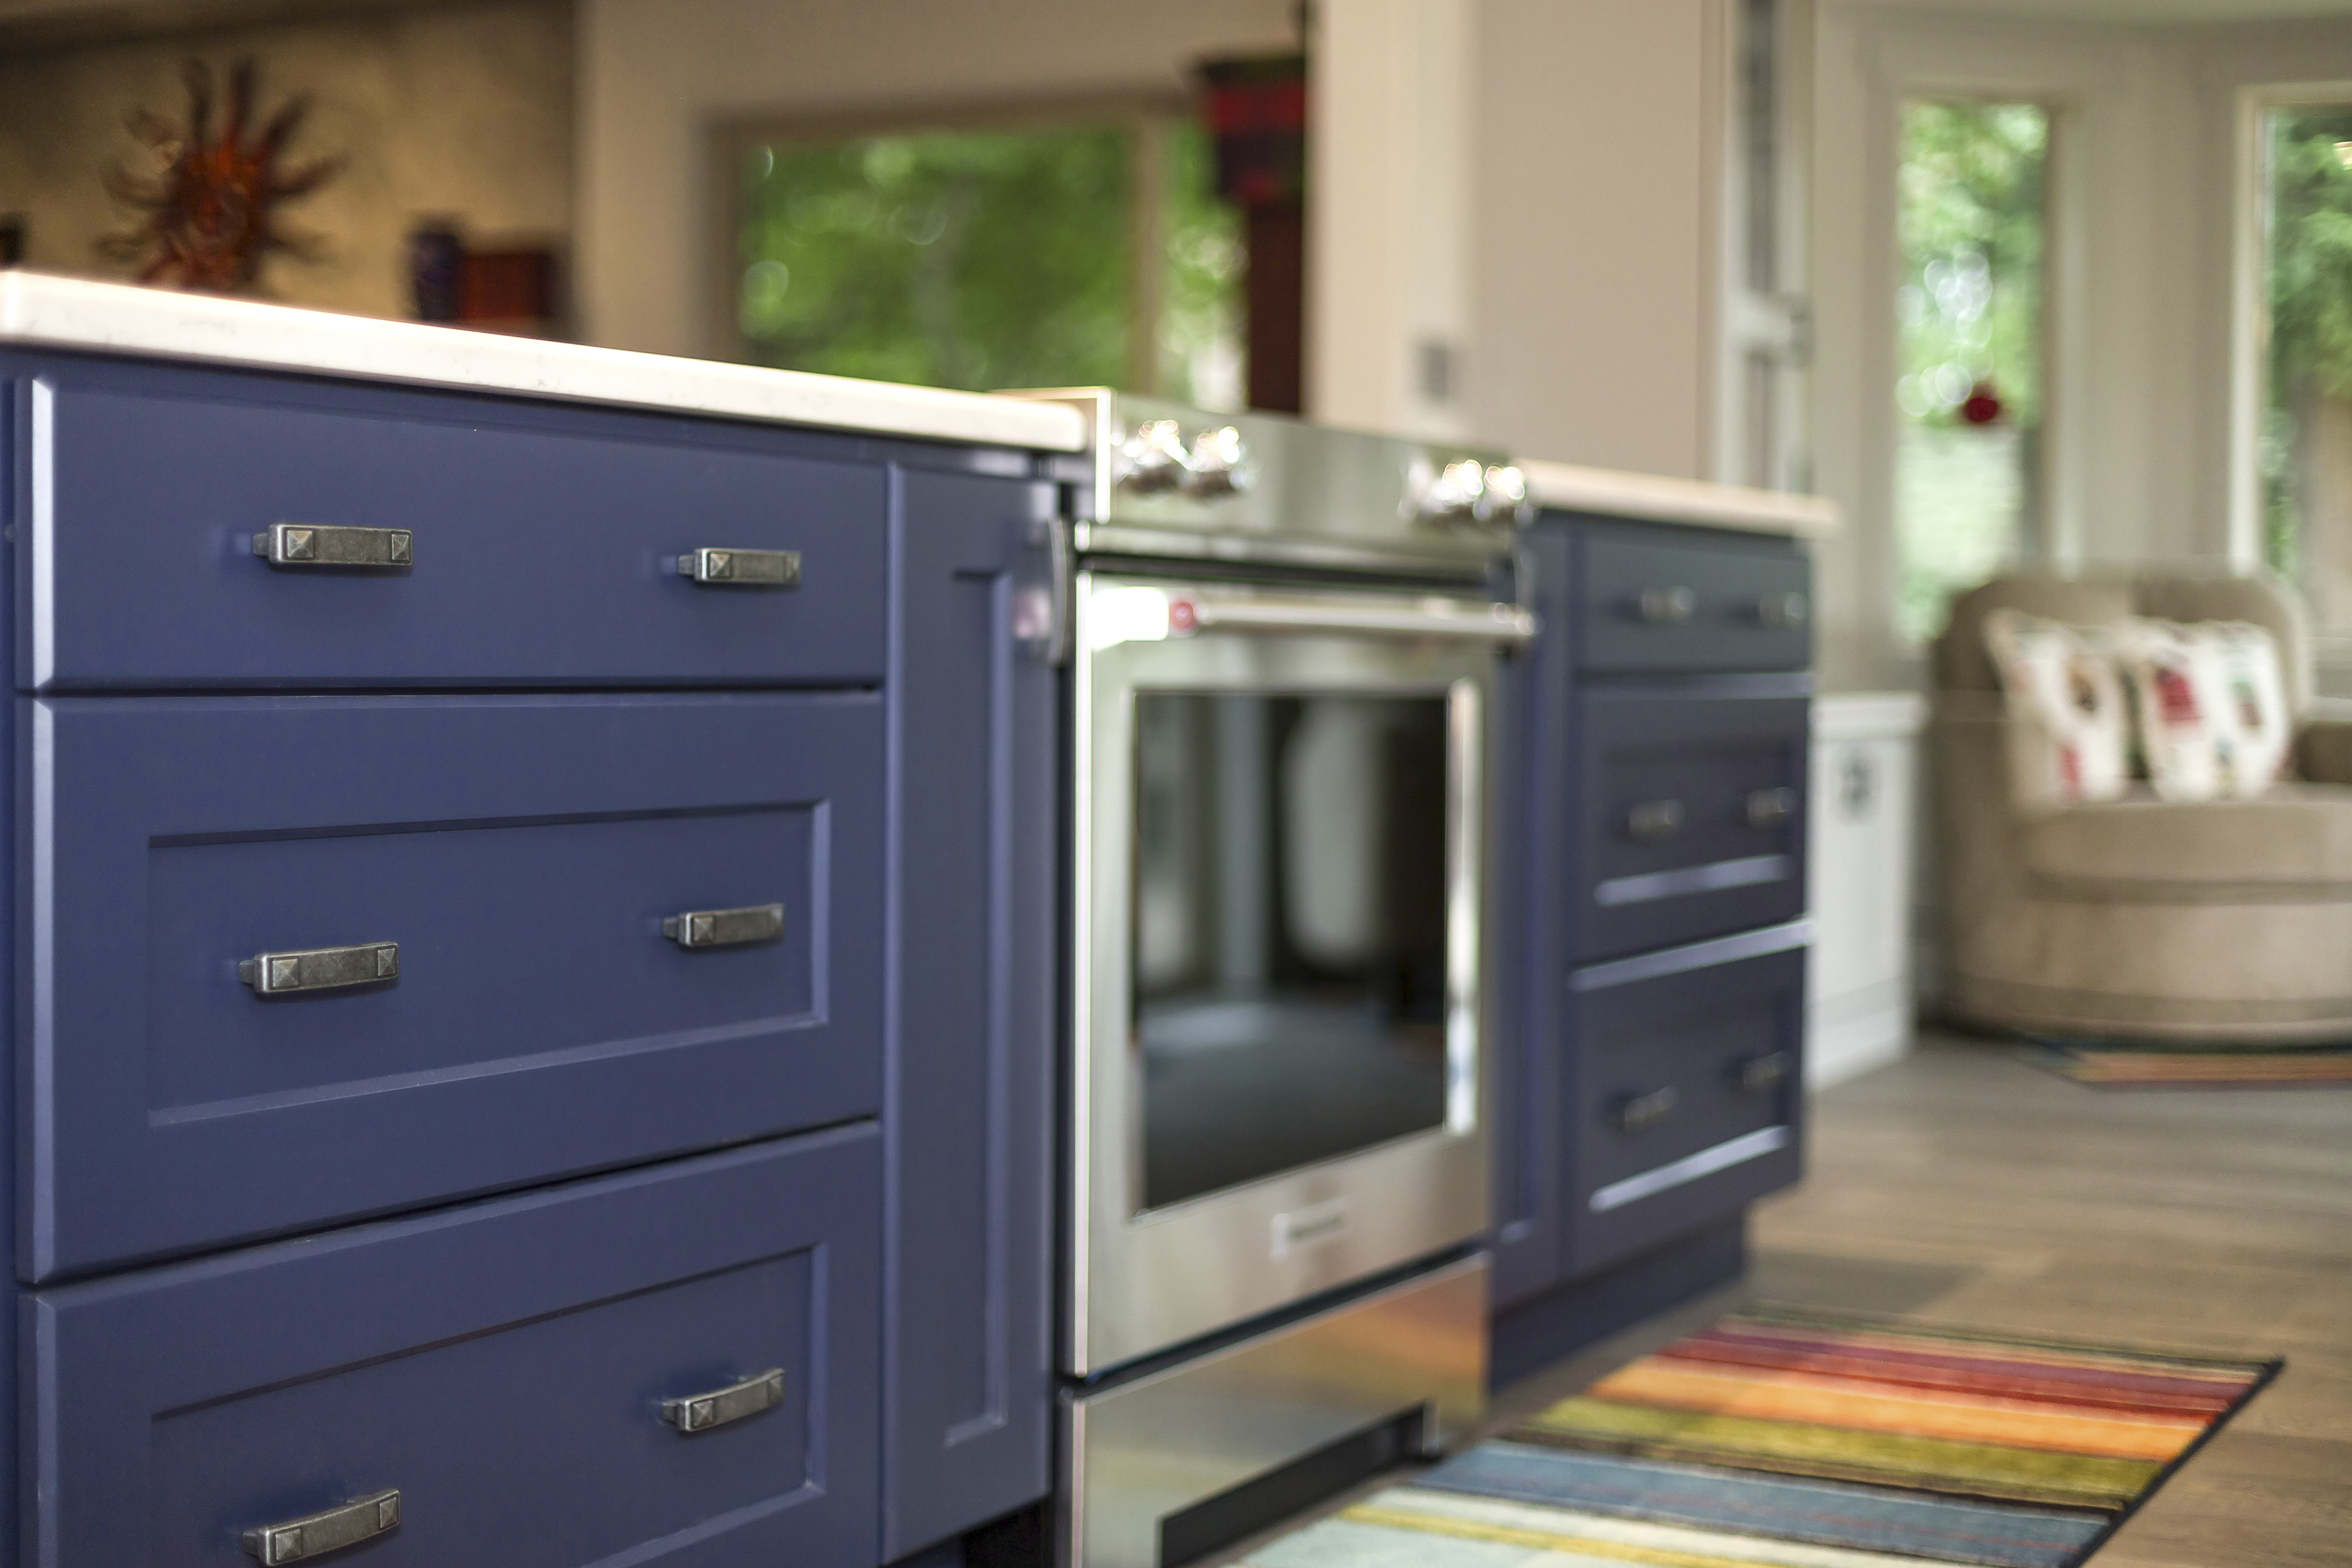 Ash Gray and Indigo Blue Kitchen Cabinetry